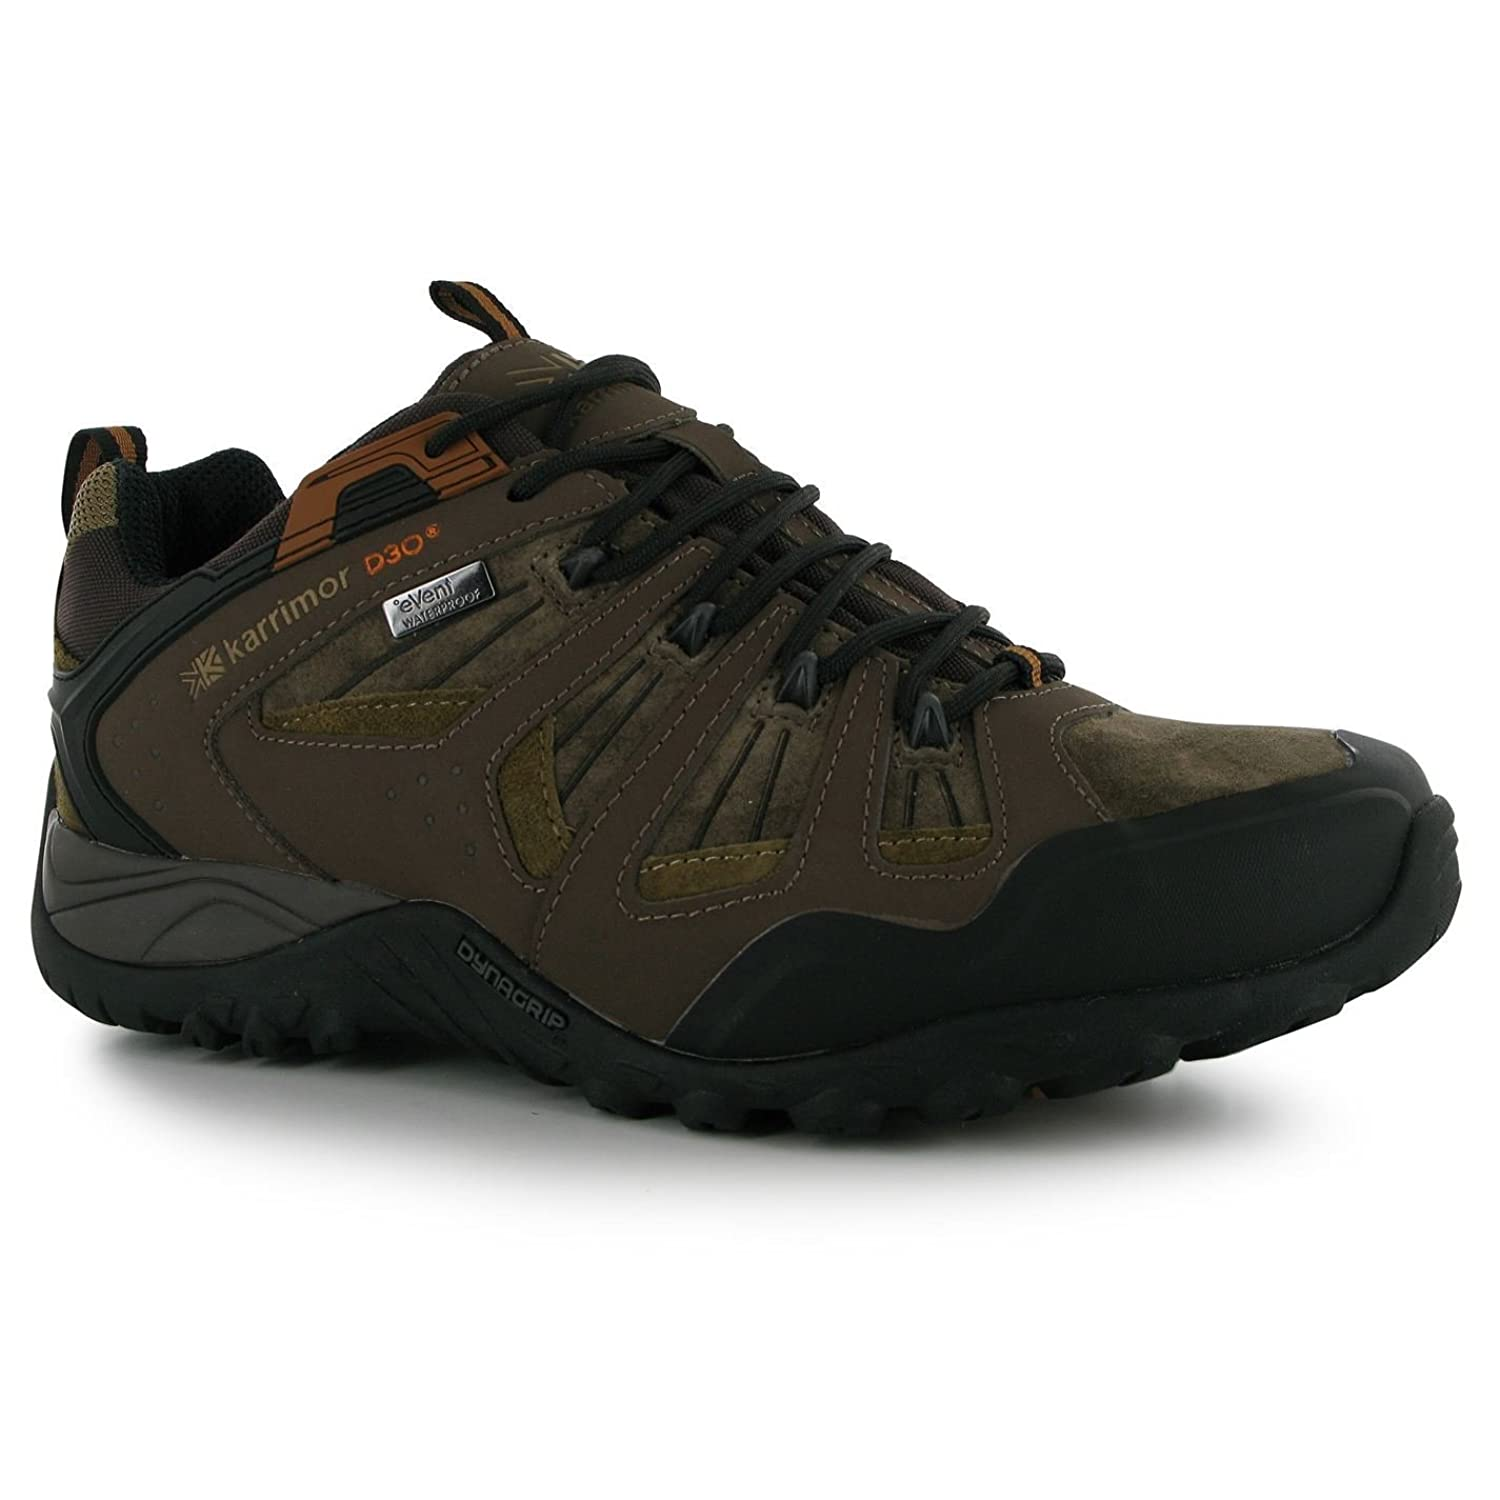 Karrimor Mens Arete Walking Shoes Dynagrip Sole Hiking Outdoor Lace Up Footwear Brown 10.5(44.5)